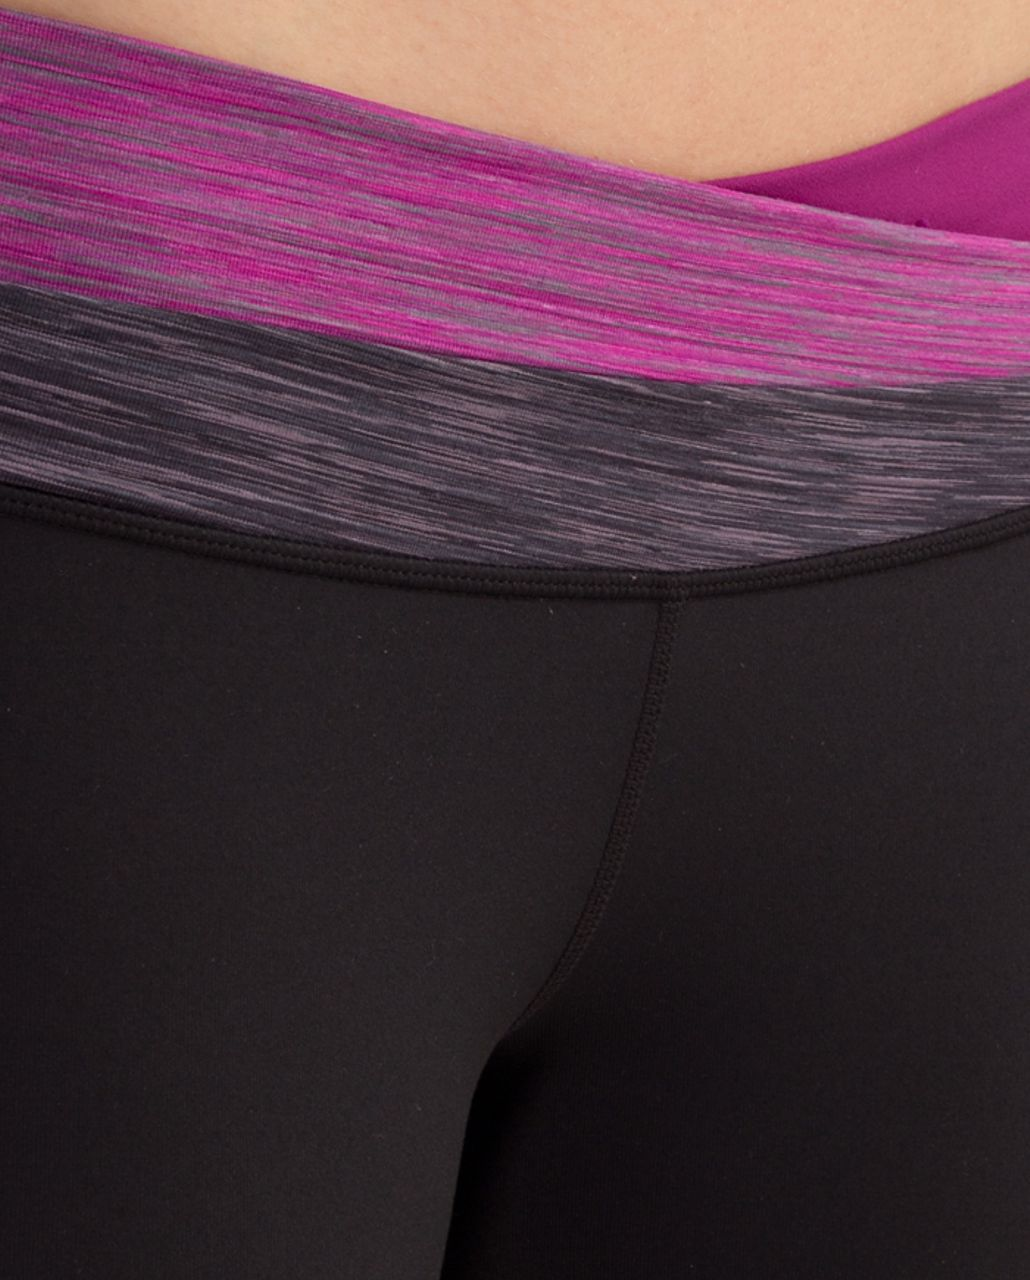 Lululemon Astro Pant (Tall) - Black /  Magnum Space Dye /  Dew Berry Space Dye